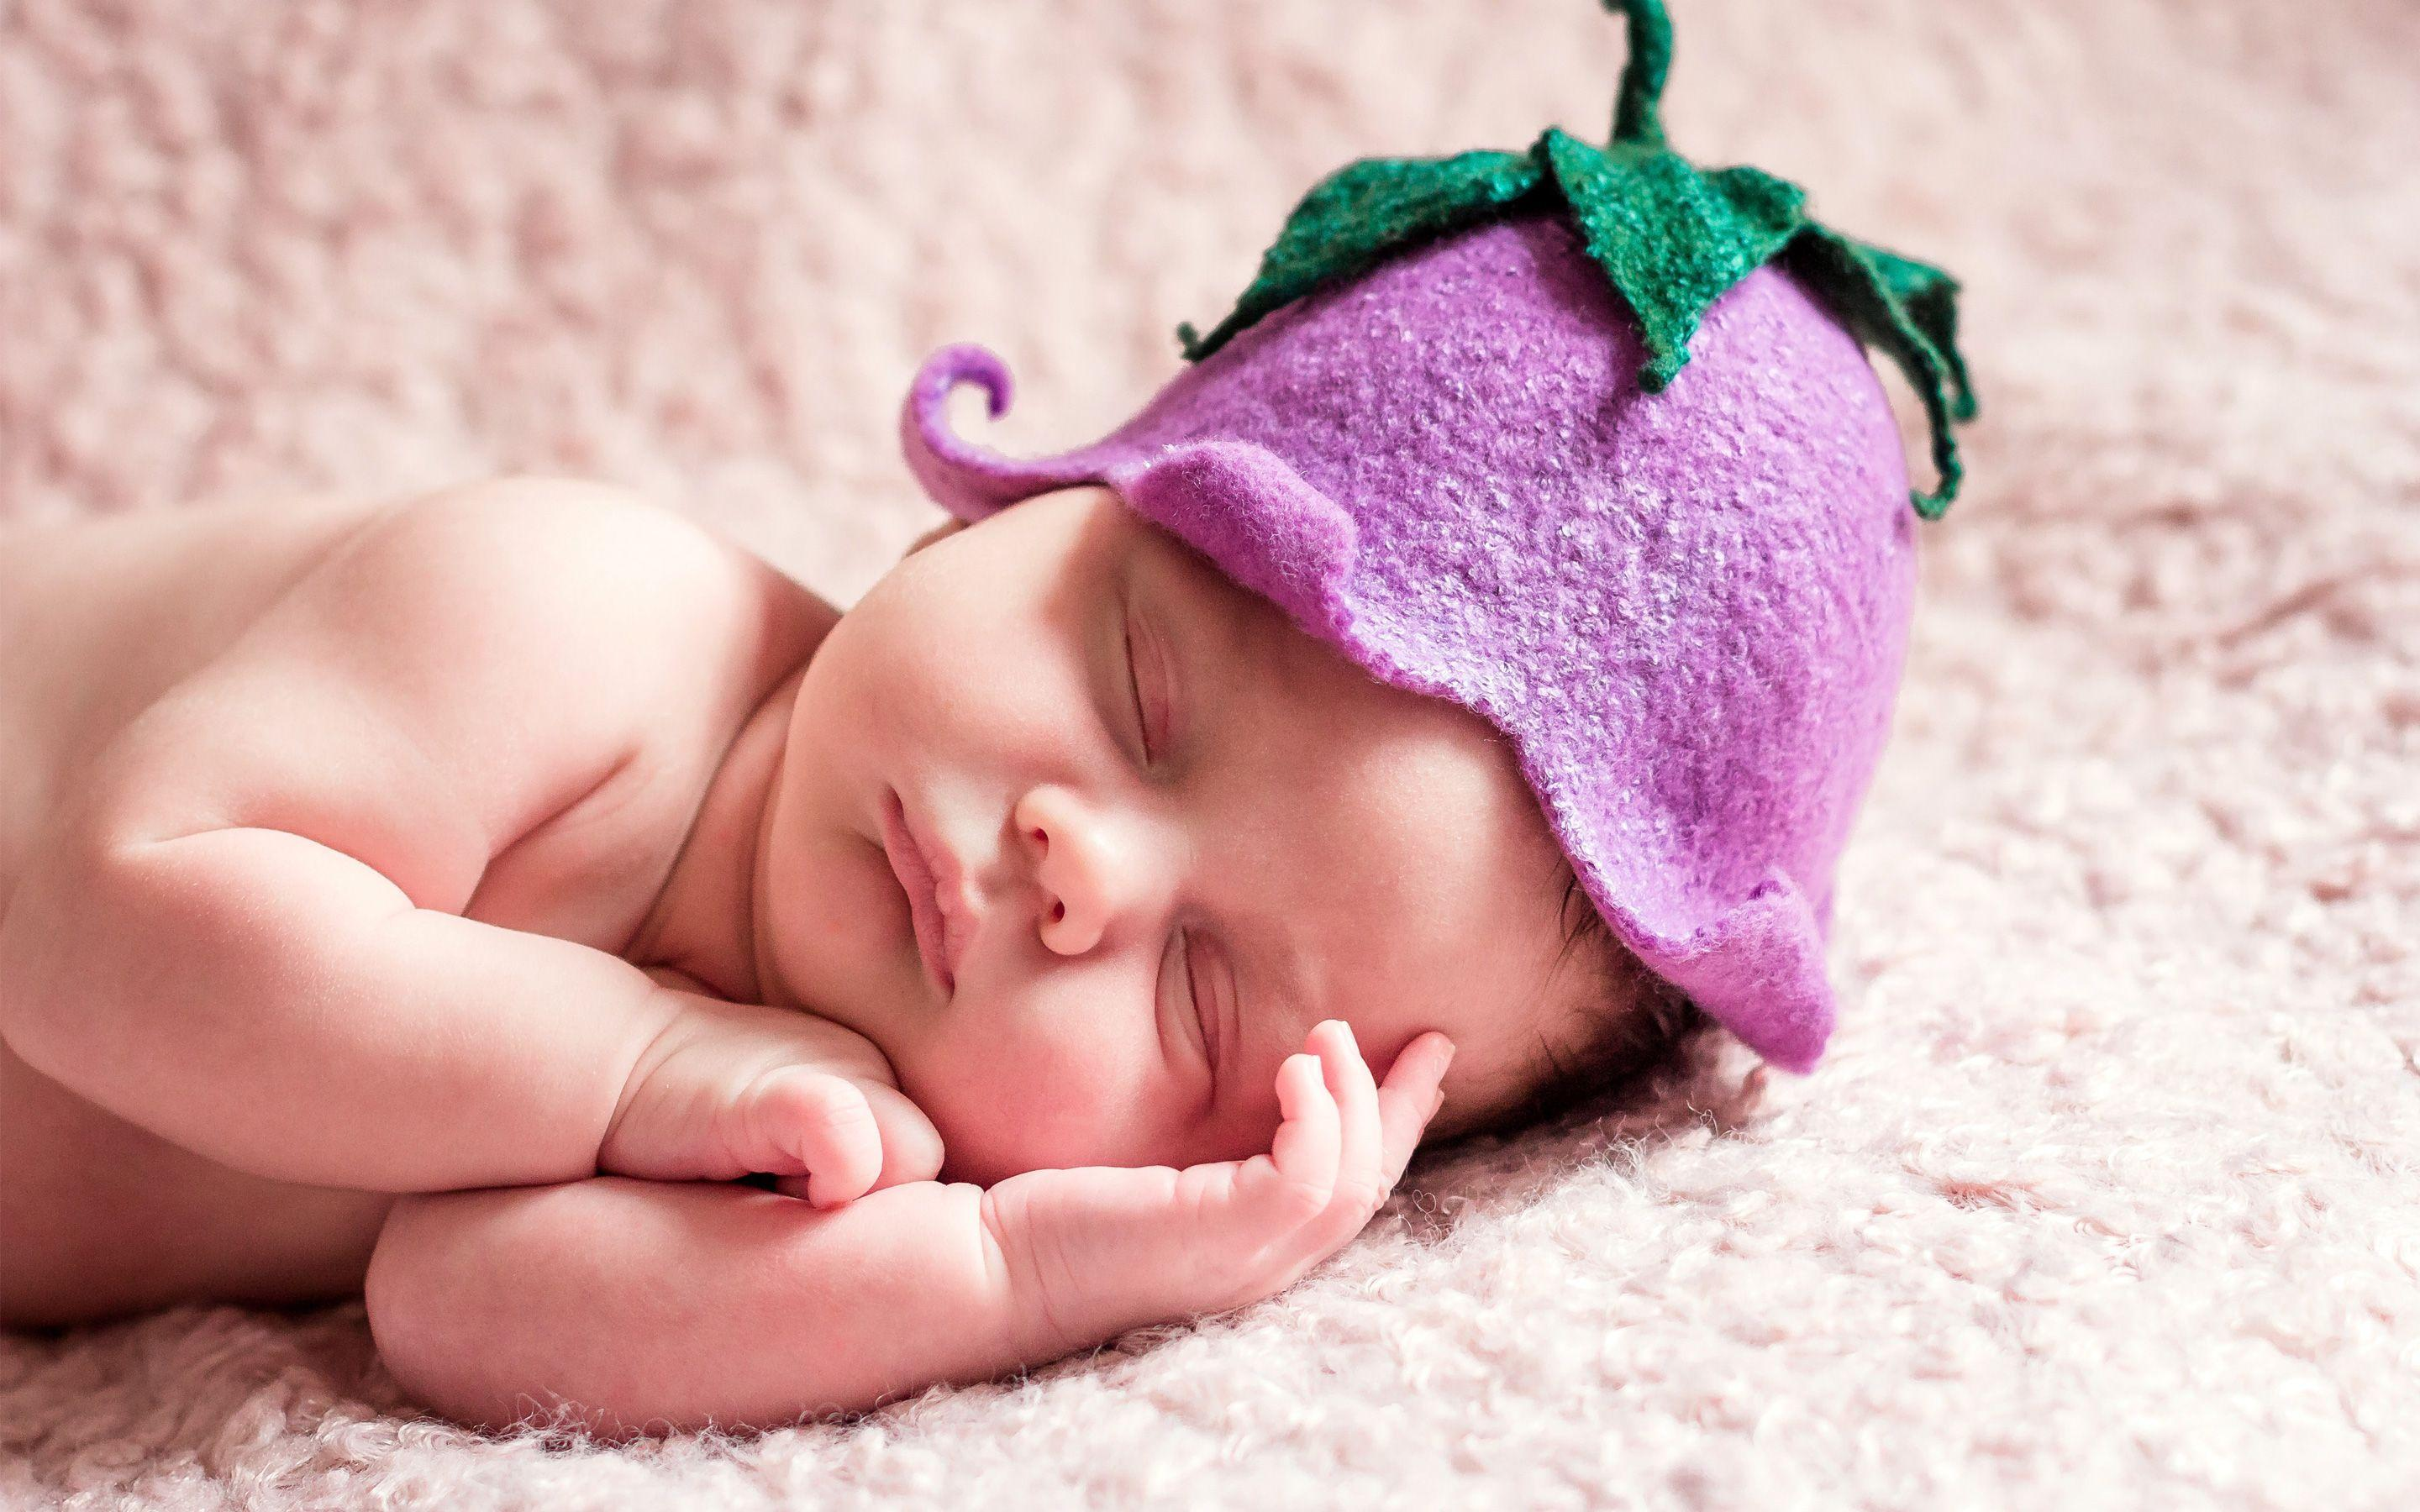 Cute Sleeping Newborn Baby Wallpapers | HD Wallpapers